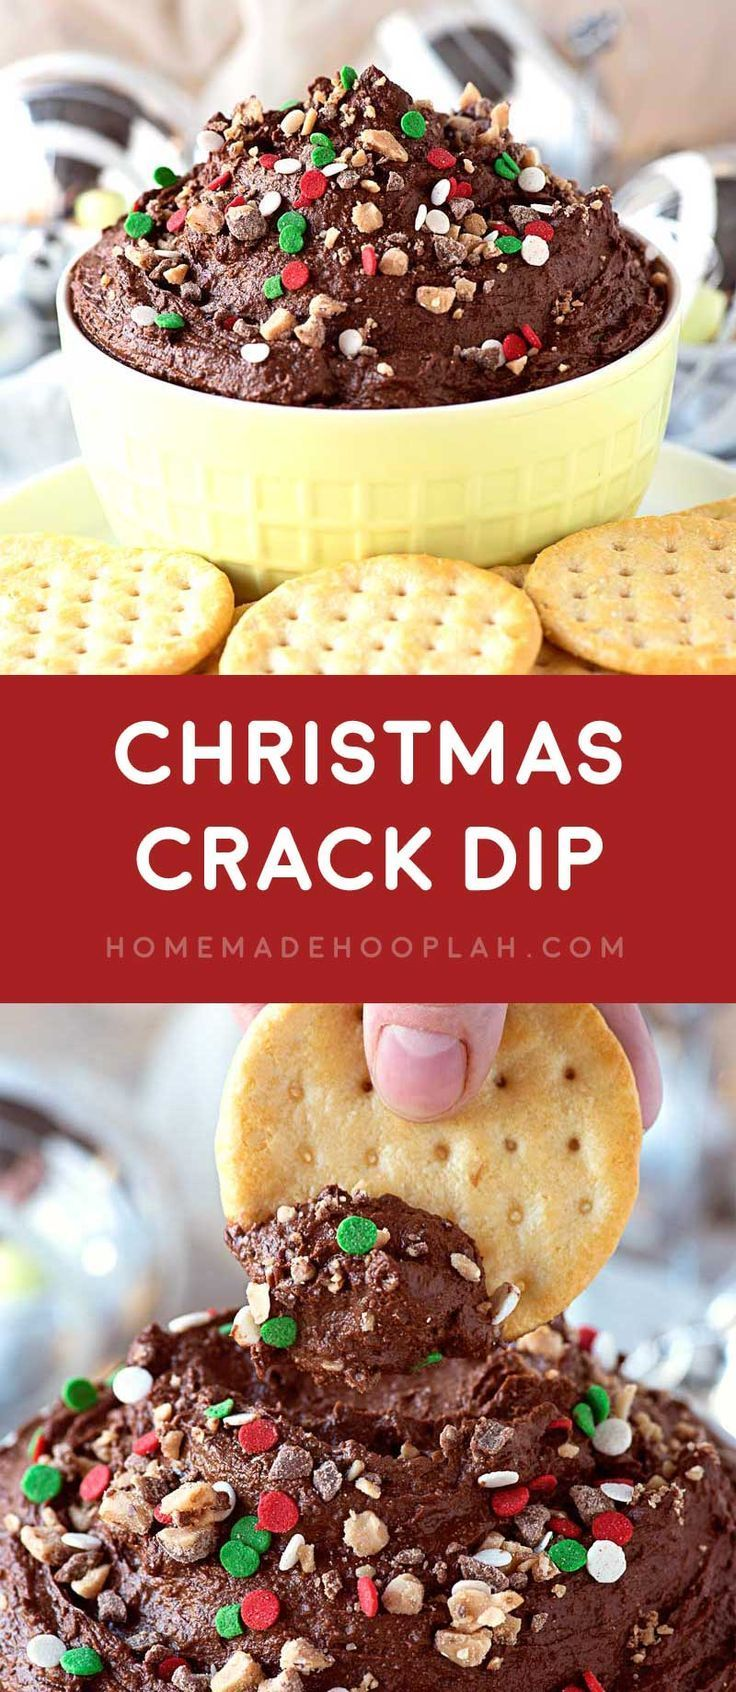 Christmas Crack Dip! A festive dip that's perfect for saltine toffee lovers! Ultra creamy chocolate with Heath toffee bits and dipped with your favorite salty crackers. | HomemadeHooplah.com